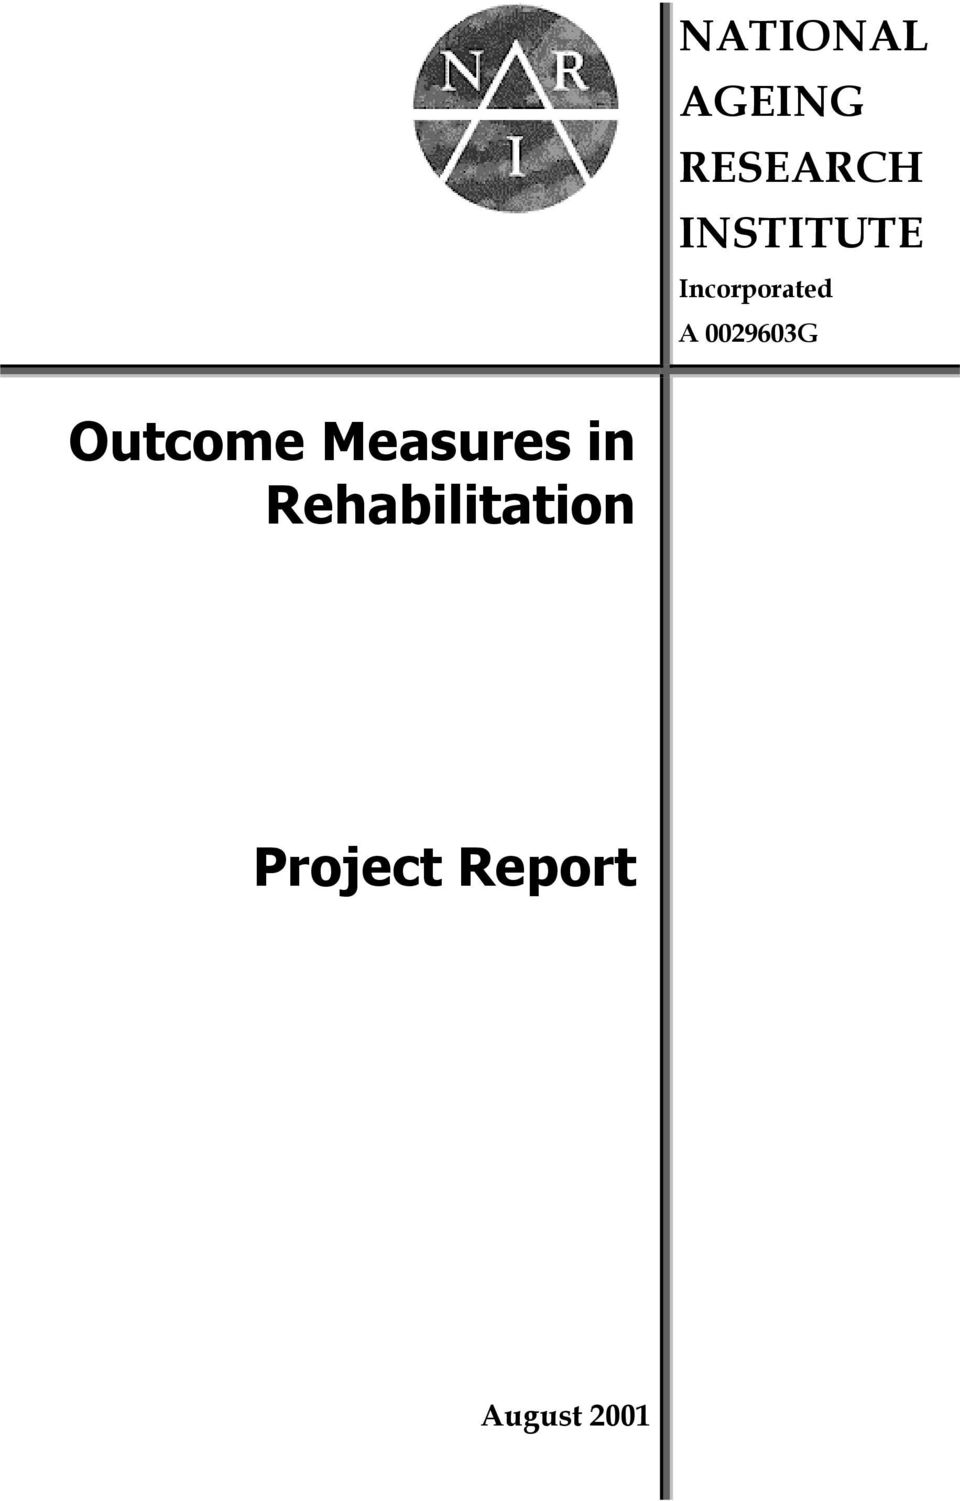 0029603G Outcome Measures in